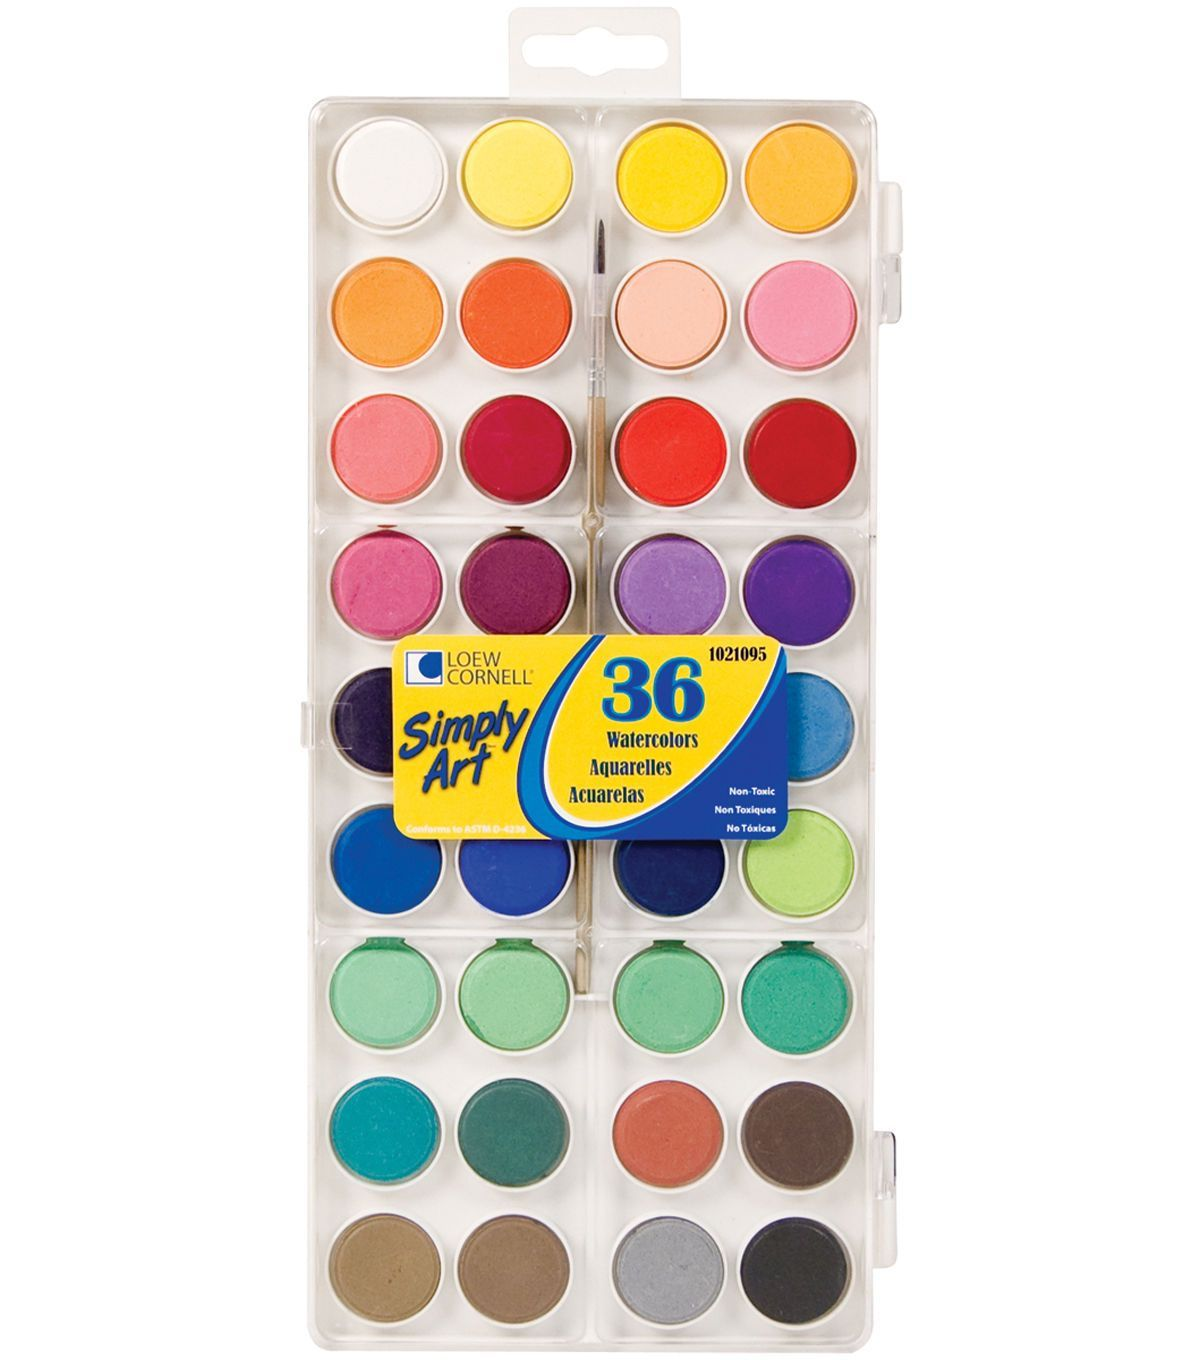 Simply Art Watercolor Paint Cakes 36pk Assorted Colors